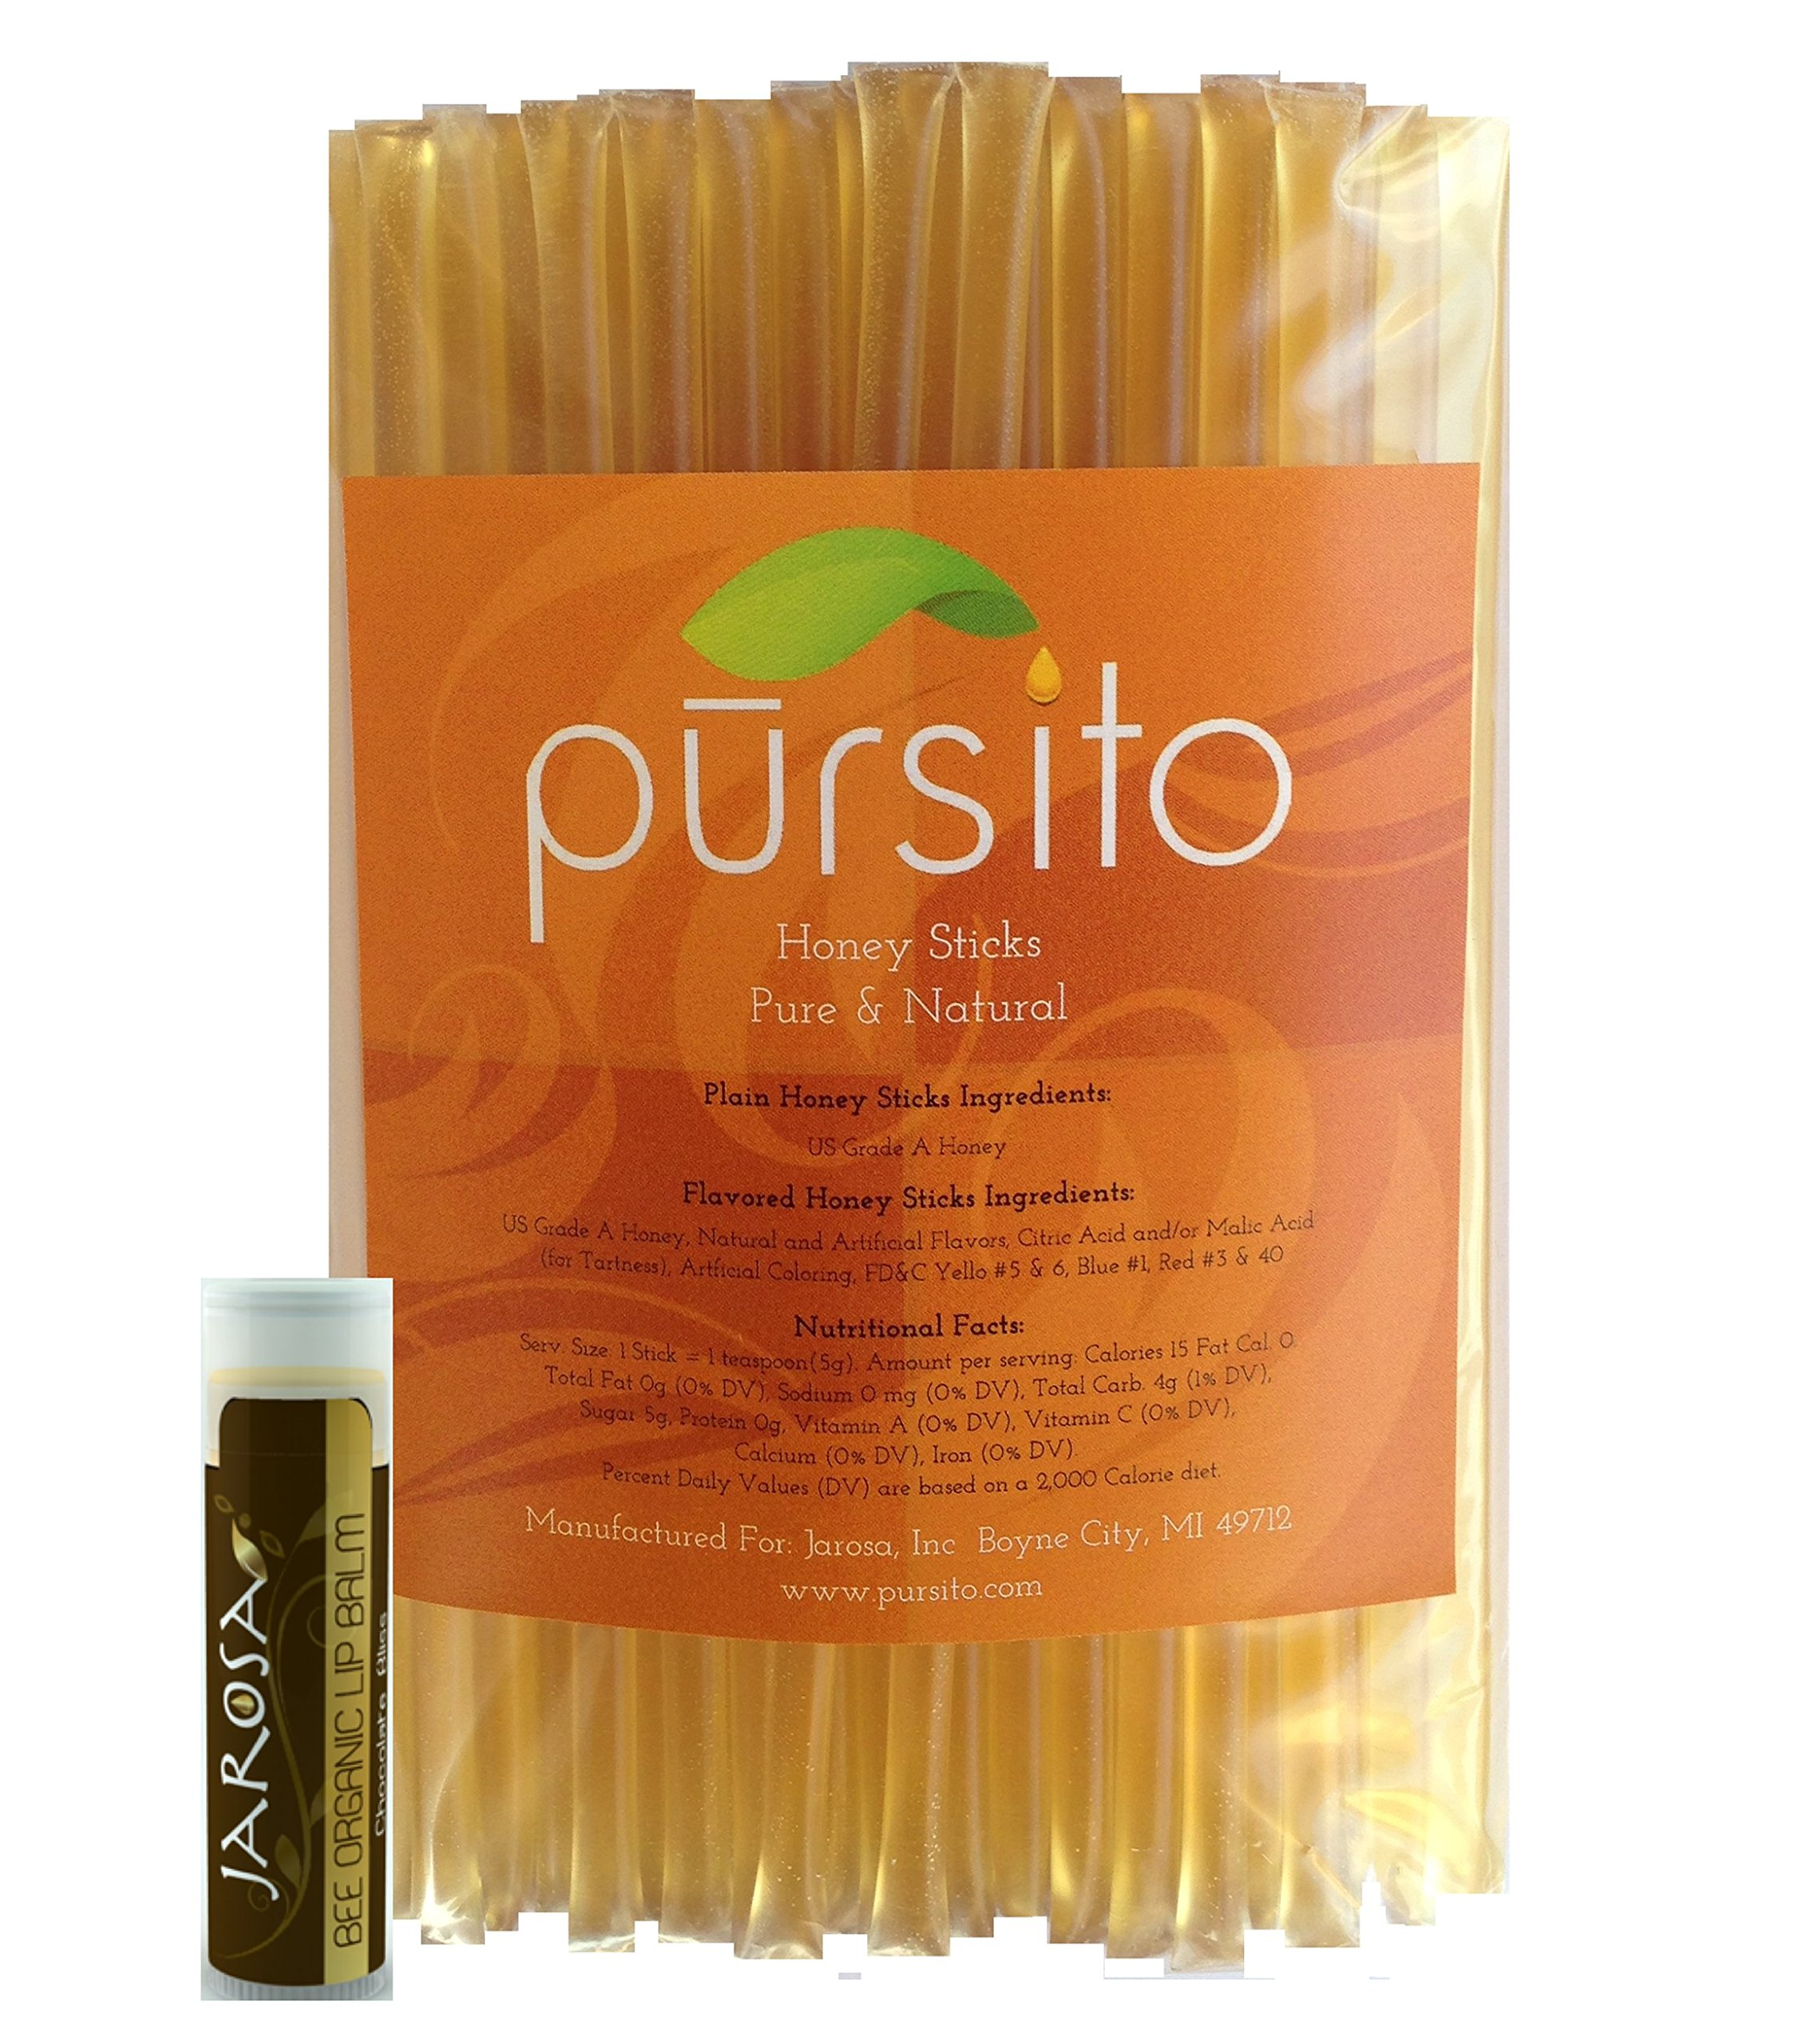 Natural LEMON Color Free Honey Sticks - Set of 100 Pursito Brand Pure & Natural Bulk Honey Stix or Honey Straws Honey Stick for Tea, Coffee or Snacking with a Jarosa Organic Chocolate Lip Balm by Pursito (Image #1)